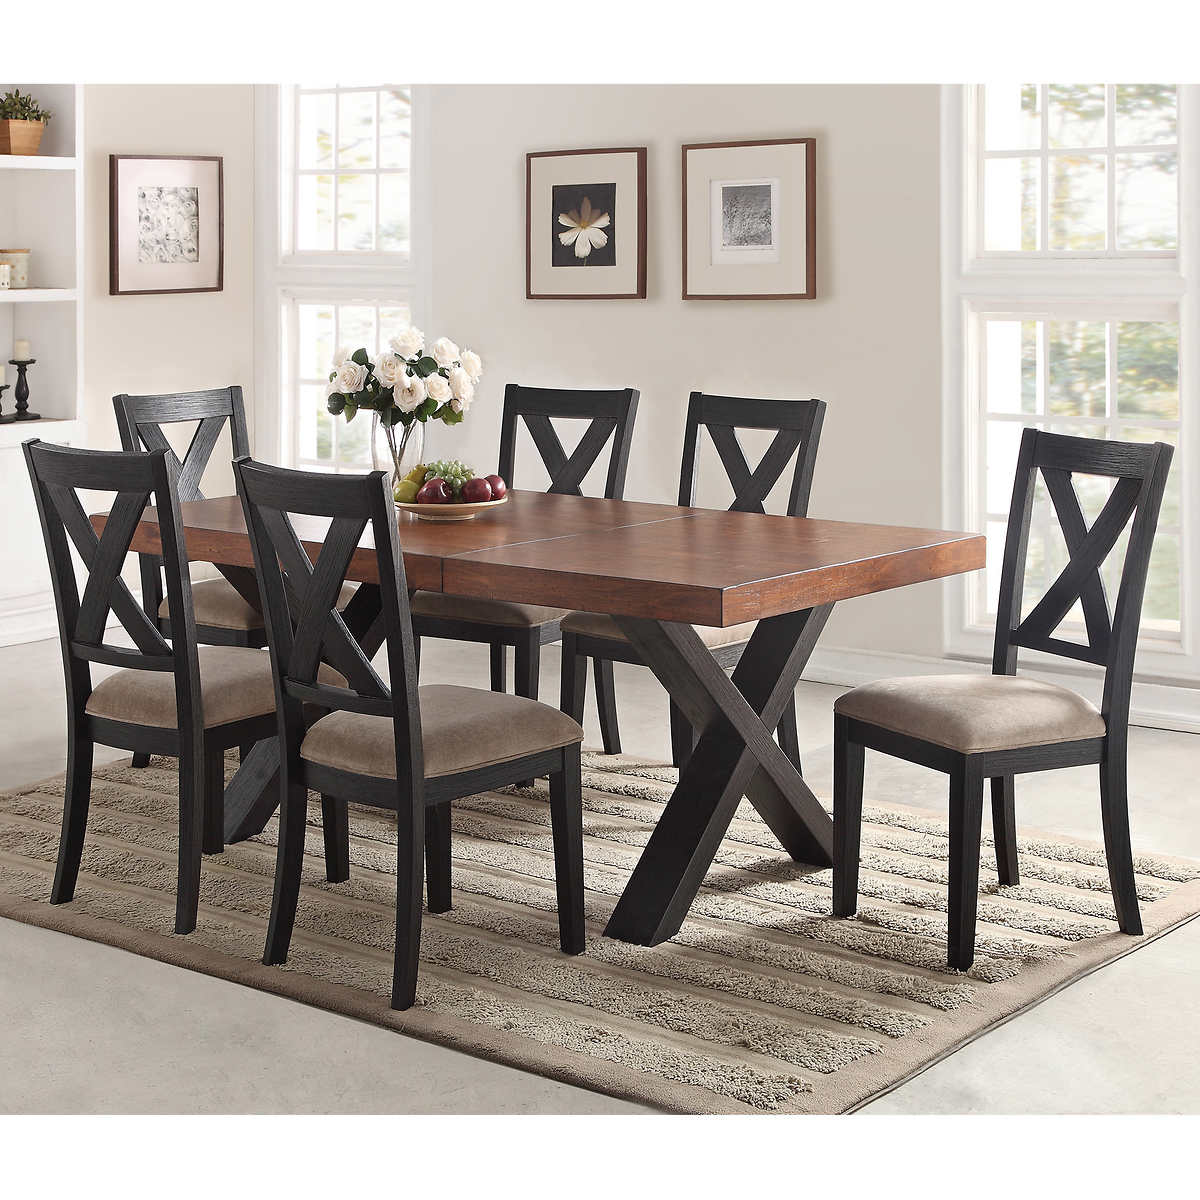 7 Dining Sets | Costco